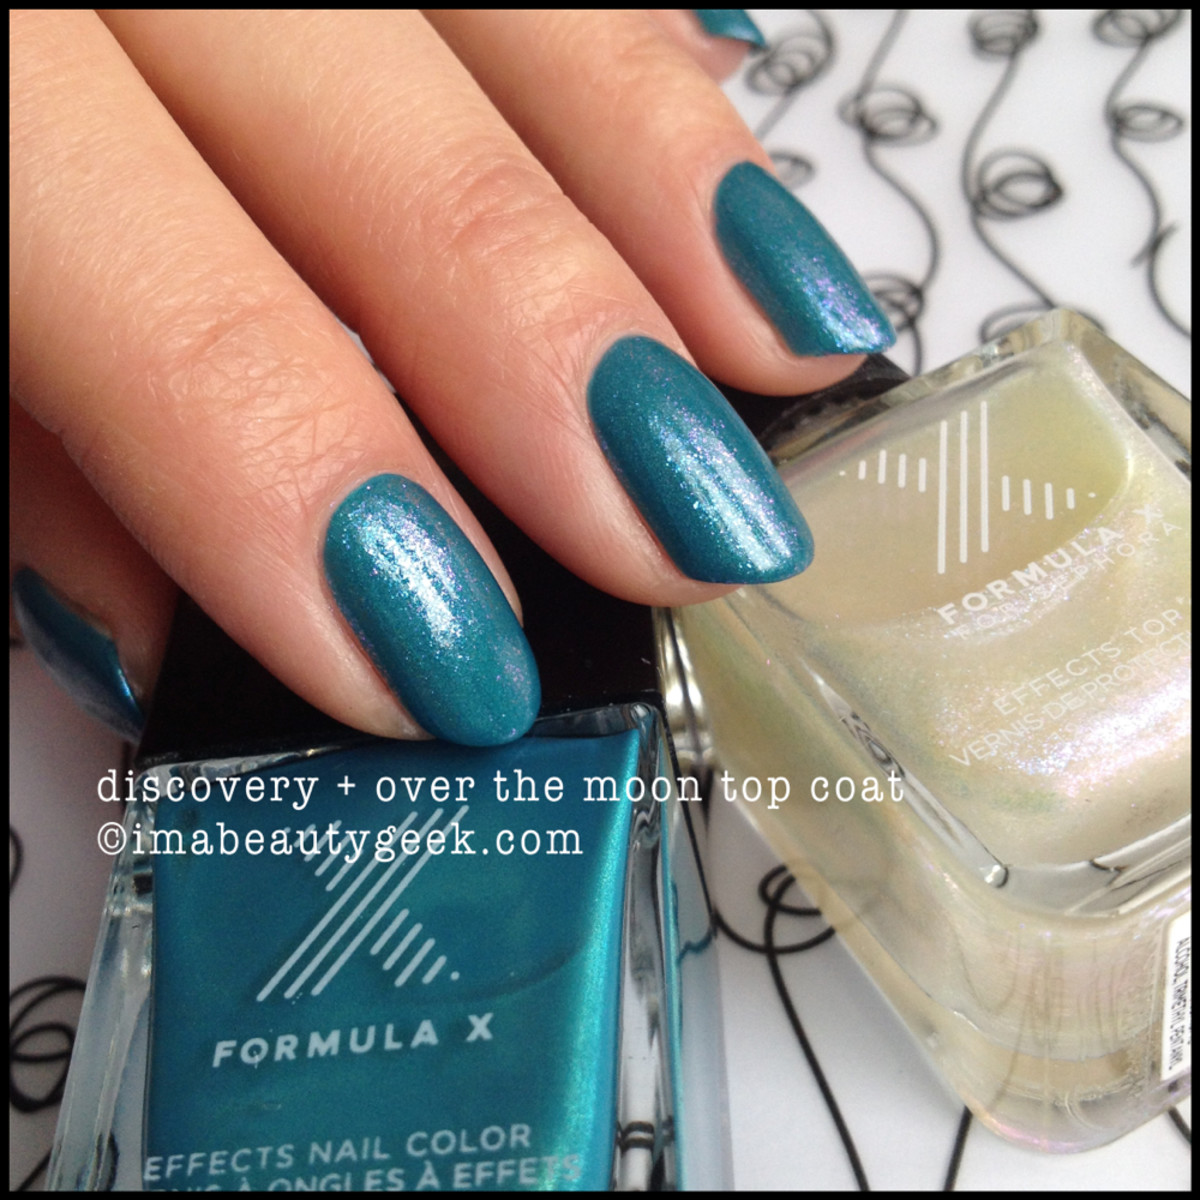 Formula X Discovery w Over The Moon Topcoat